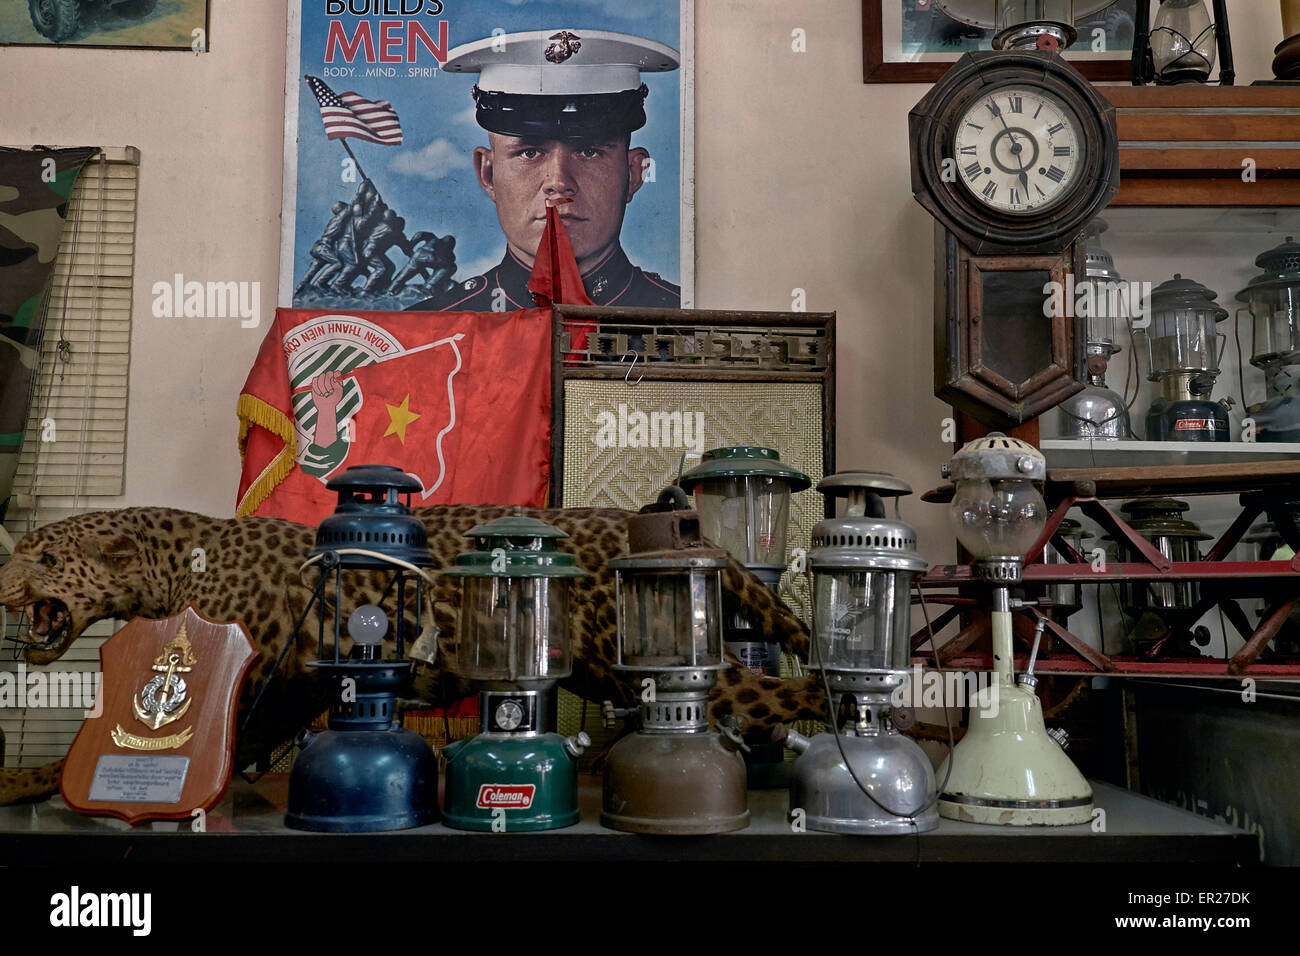 Tilley lamps from World War 2 and assorted 1940's memorabilia. - Stock Image